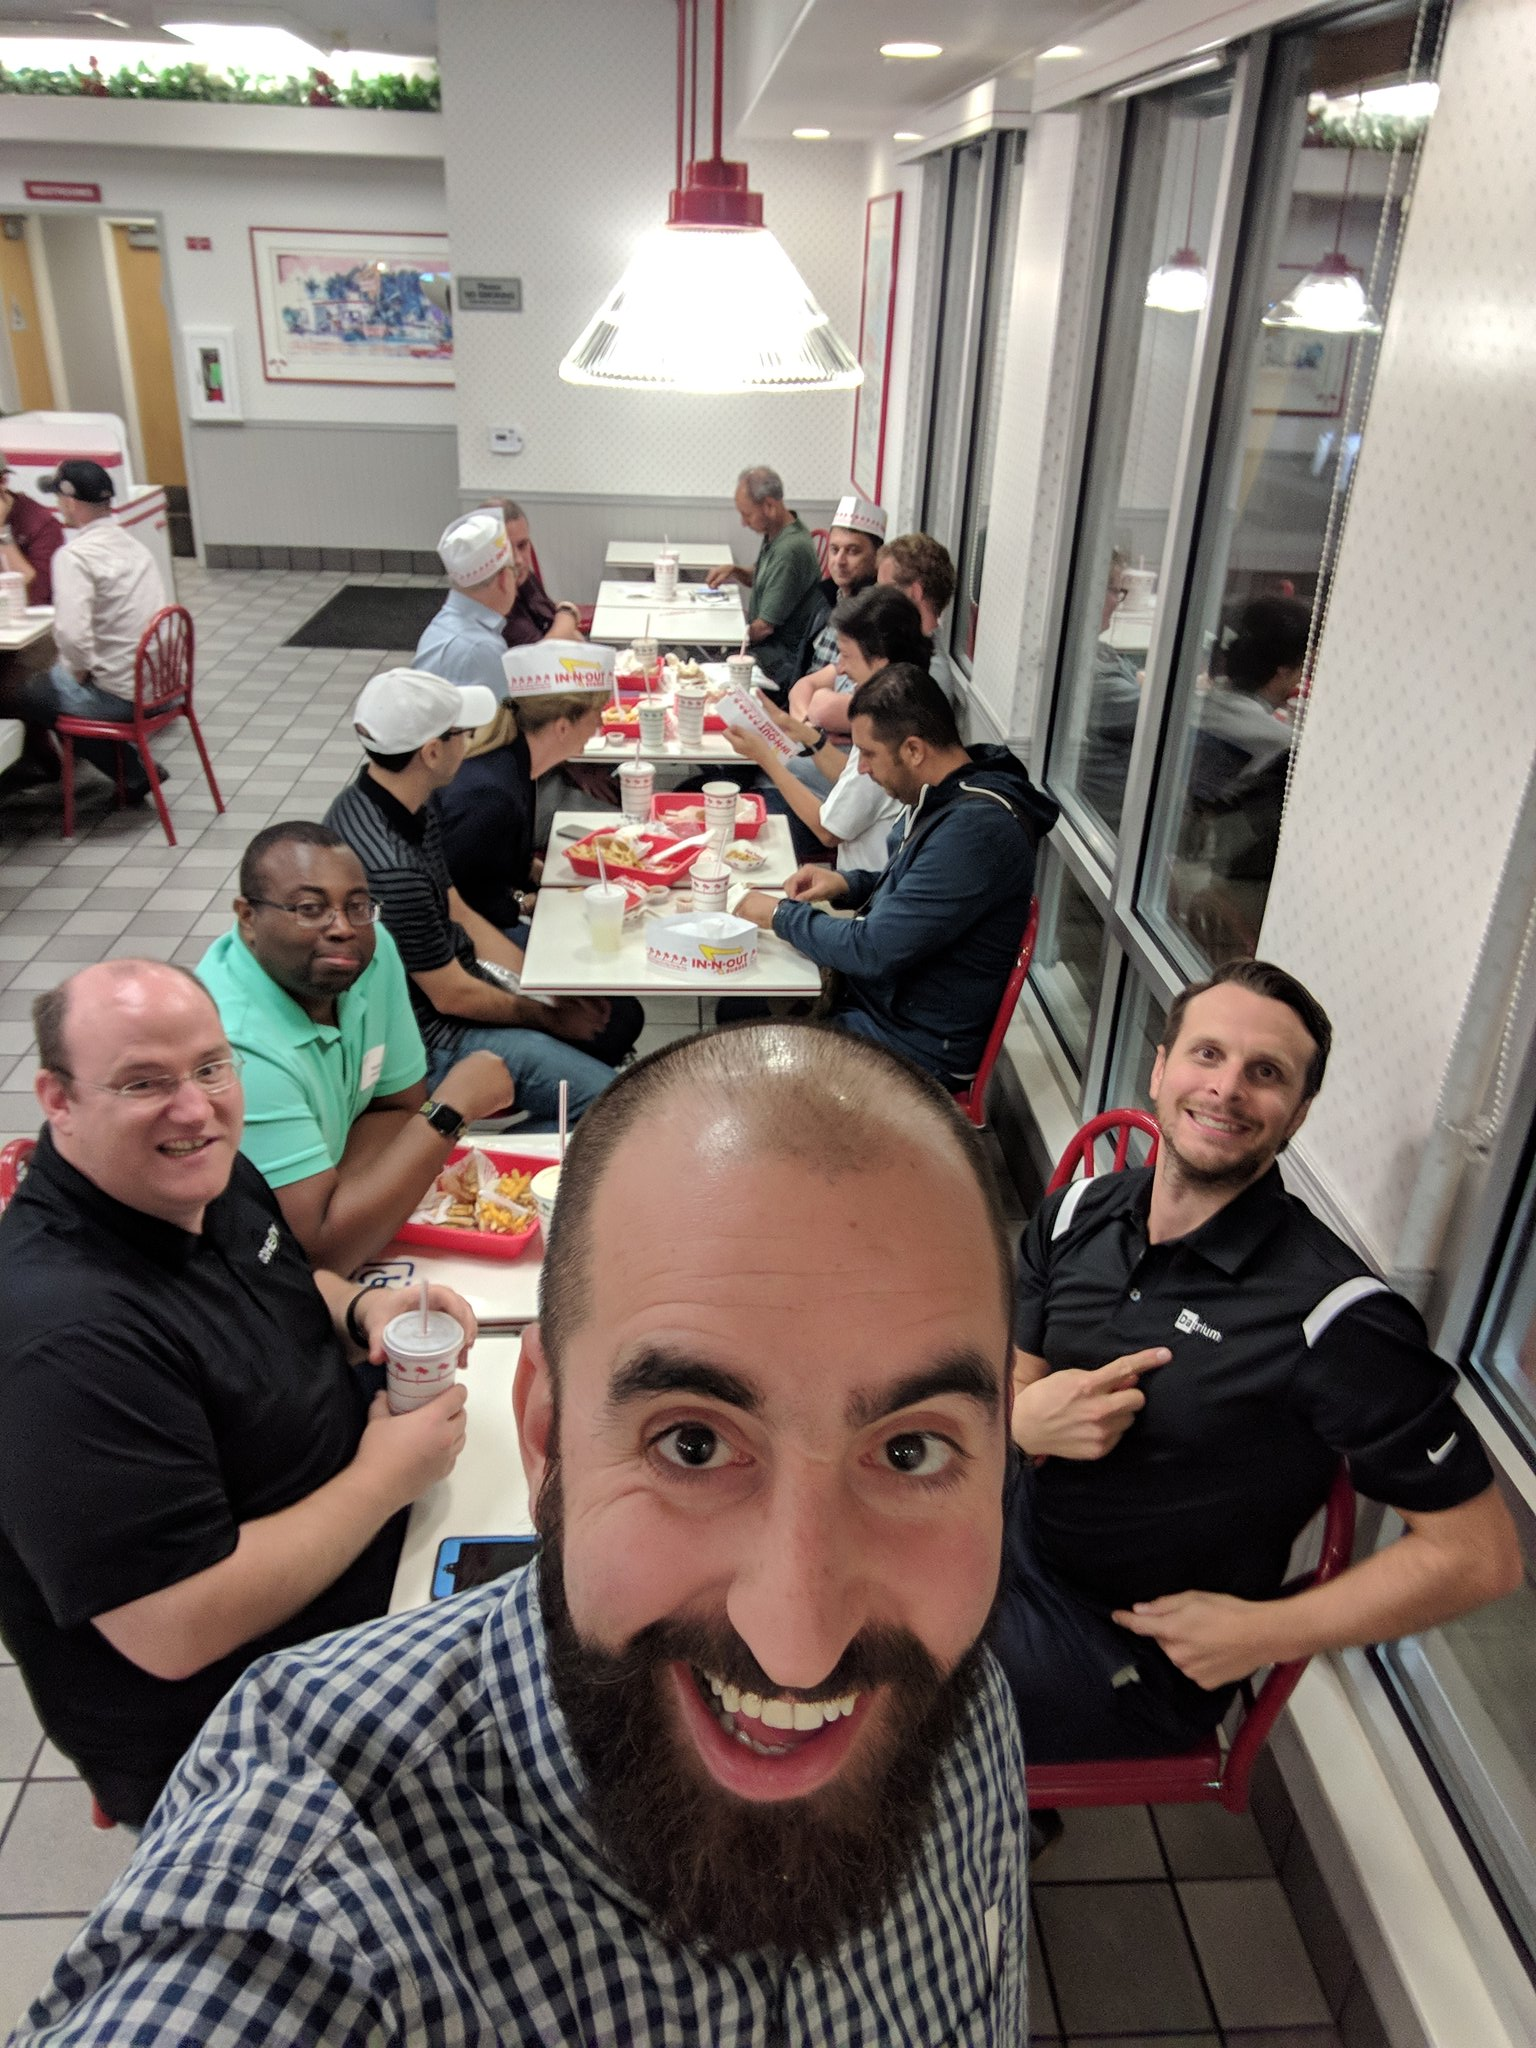 blog/cfd4-in-n-out-burger-group.jpg